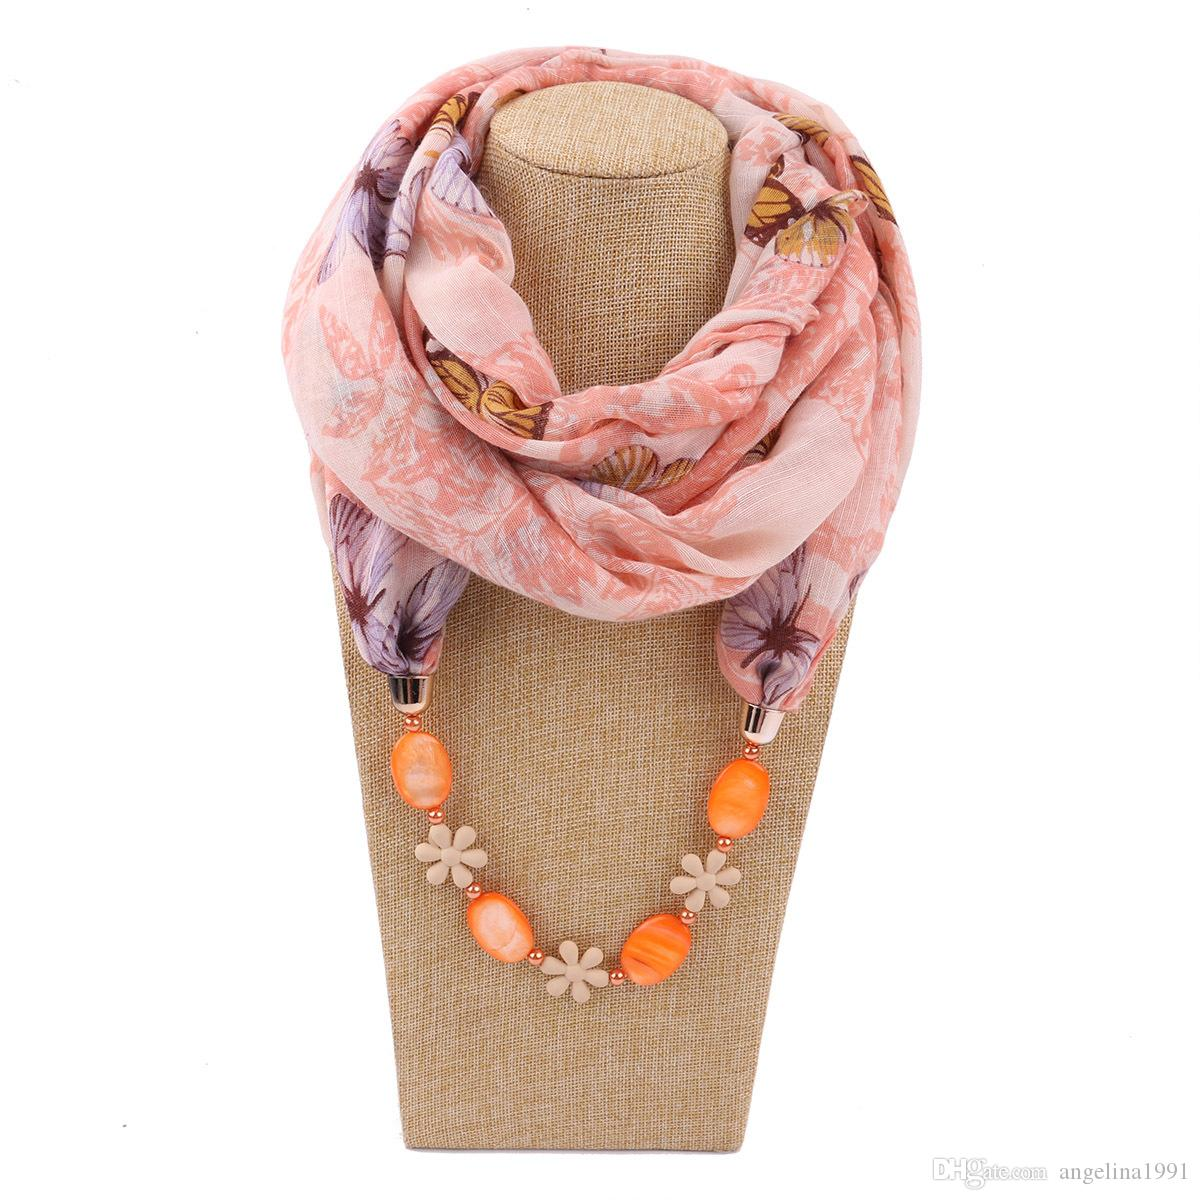 Women Ethnic Beaded Pendant Scarf Artificial Tassels Necklace Collar Floral Printed Bohemian Chiffon Infinity Circle Loop Shawl scarves